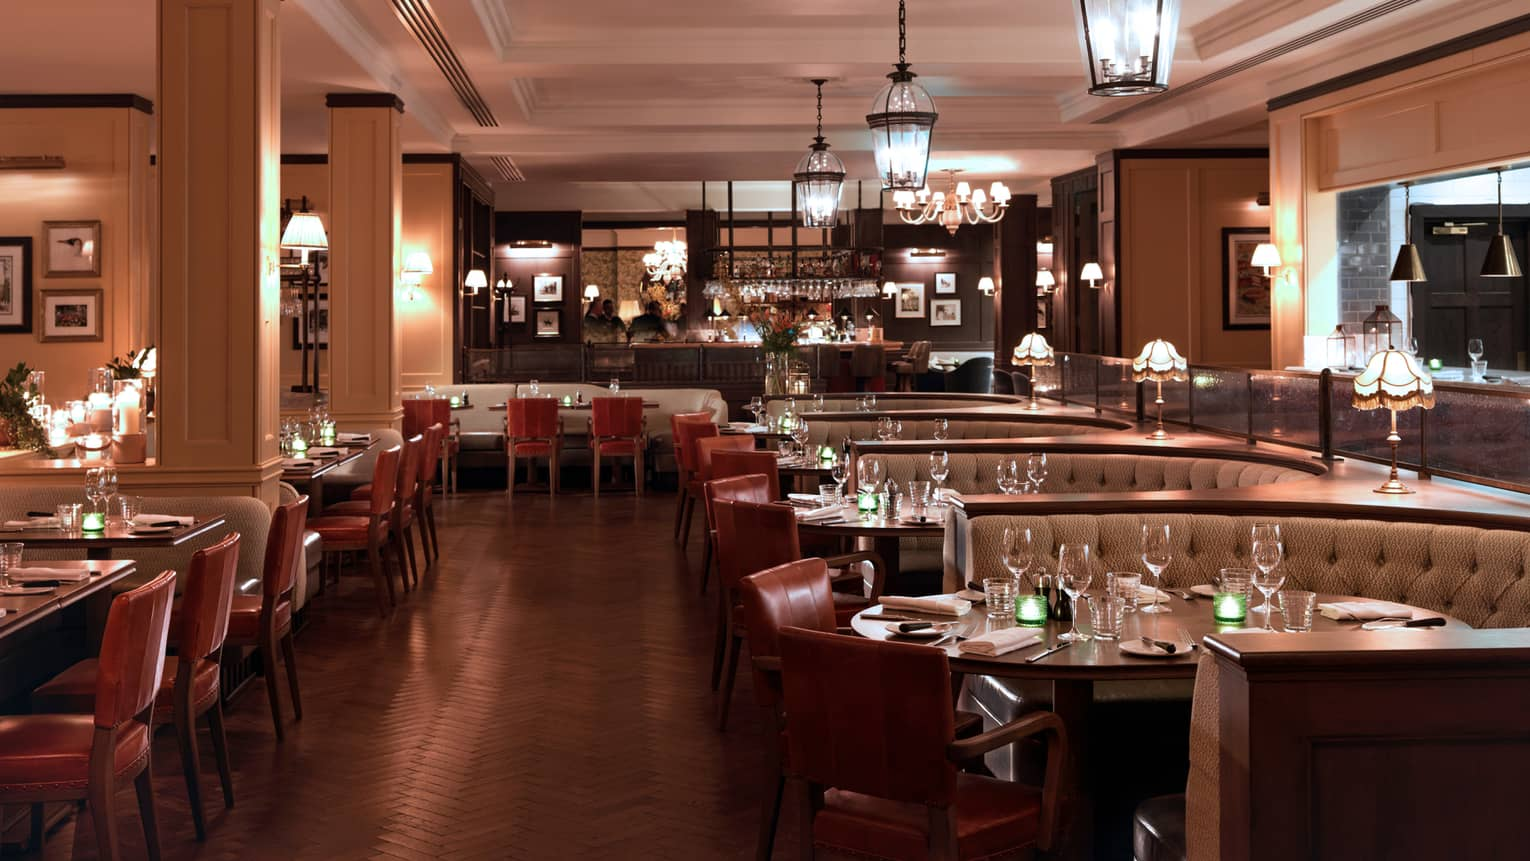 Restaurant with dark wood floors, row of tables with curved booths and red leather chairs, hanging chandeliers